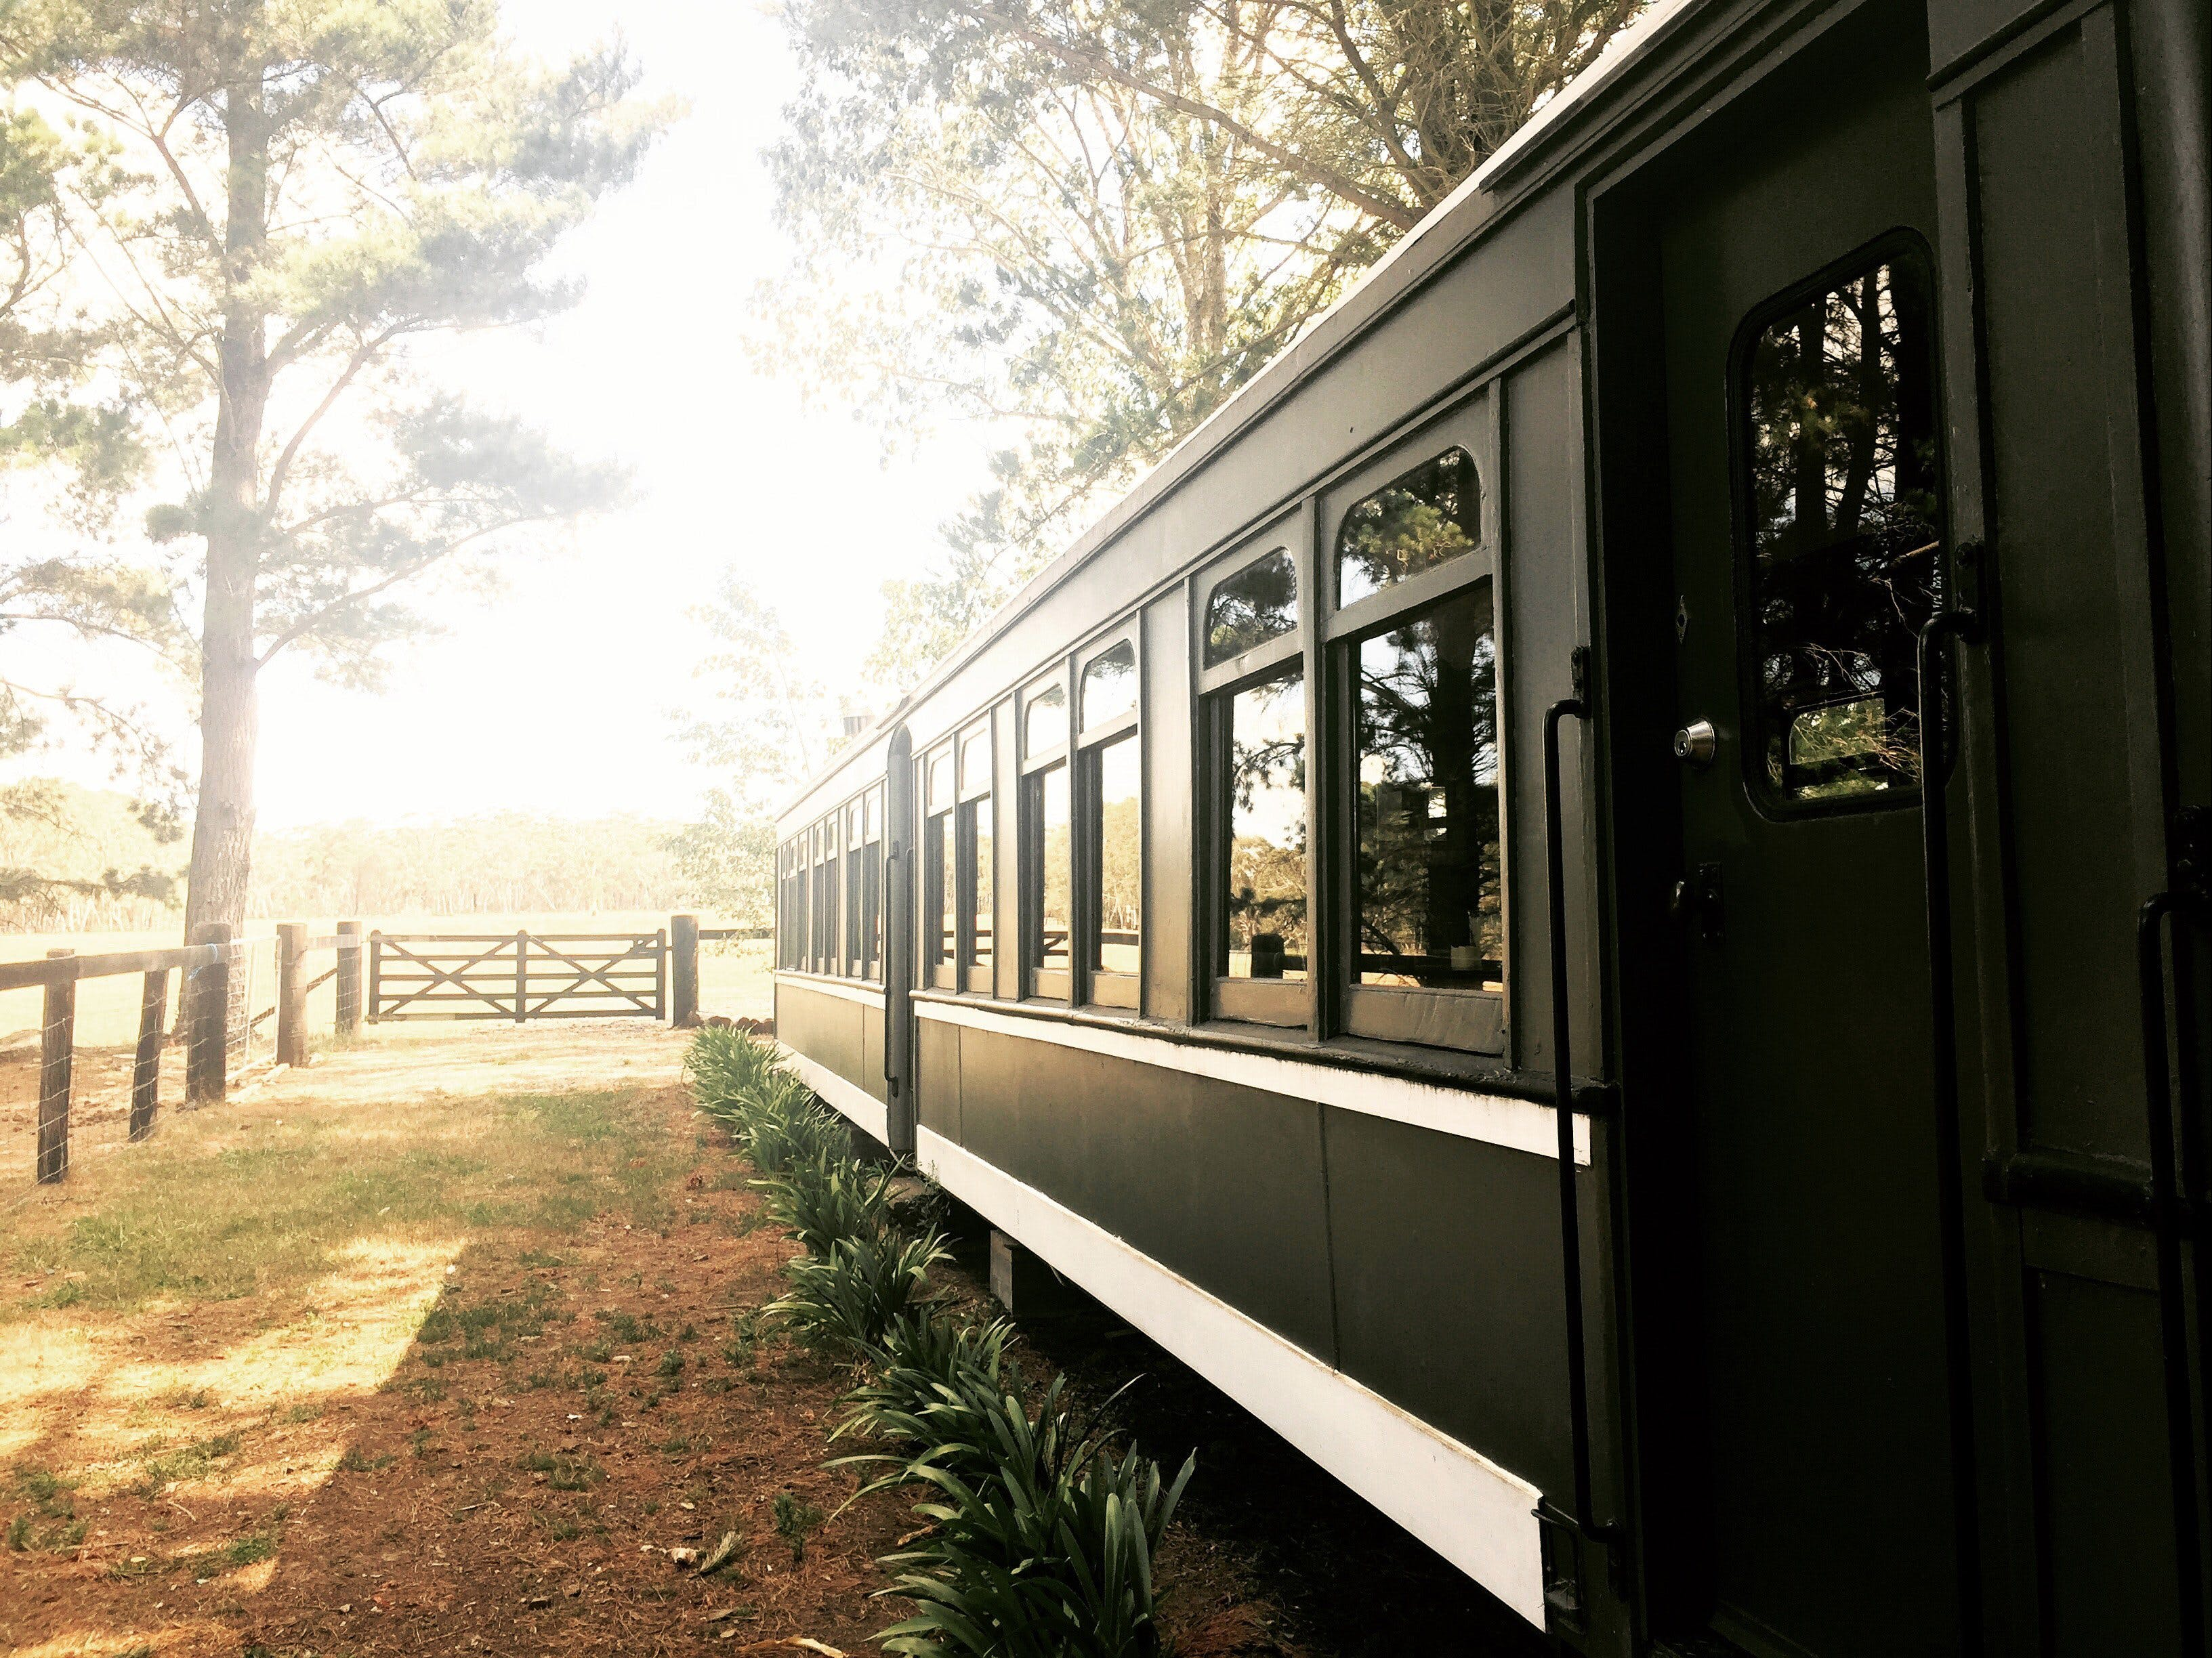 Redleaf Farm Carriages - Accommodation Burleigh